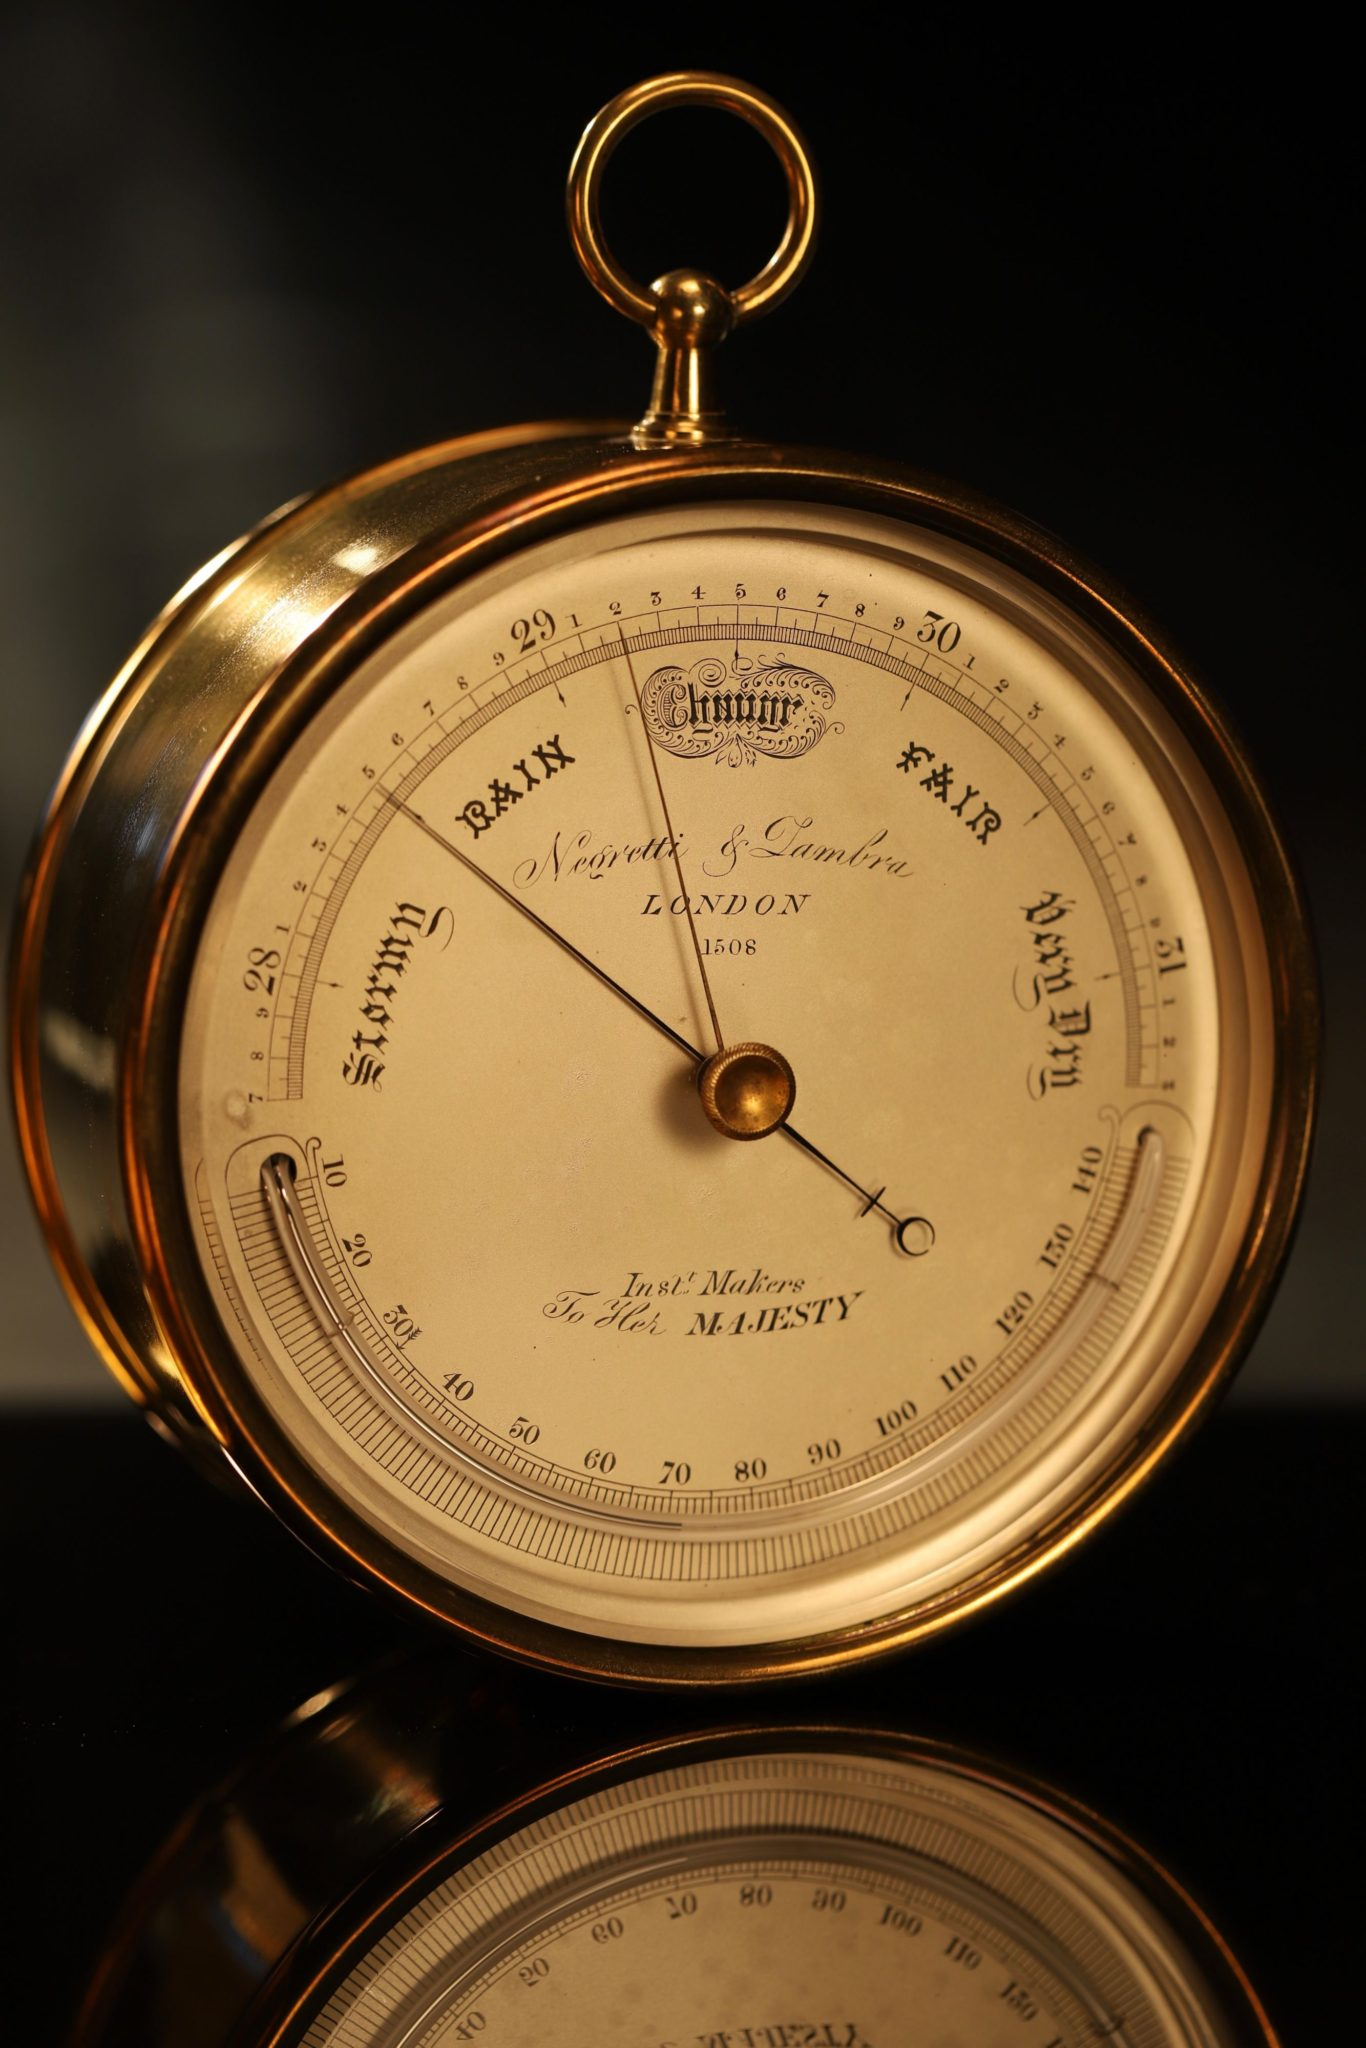 Image of Negretti & Zambra Barometer No 1508 in Oak Case